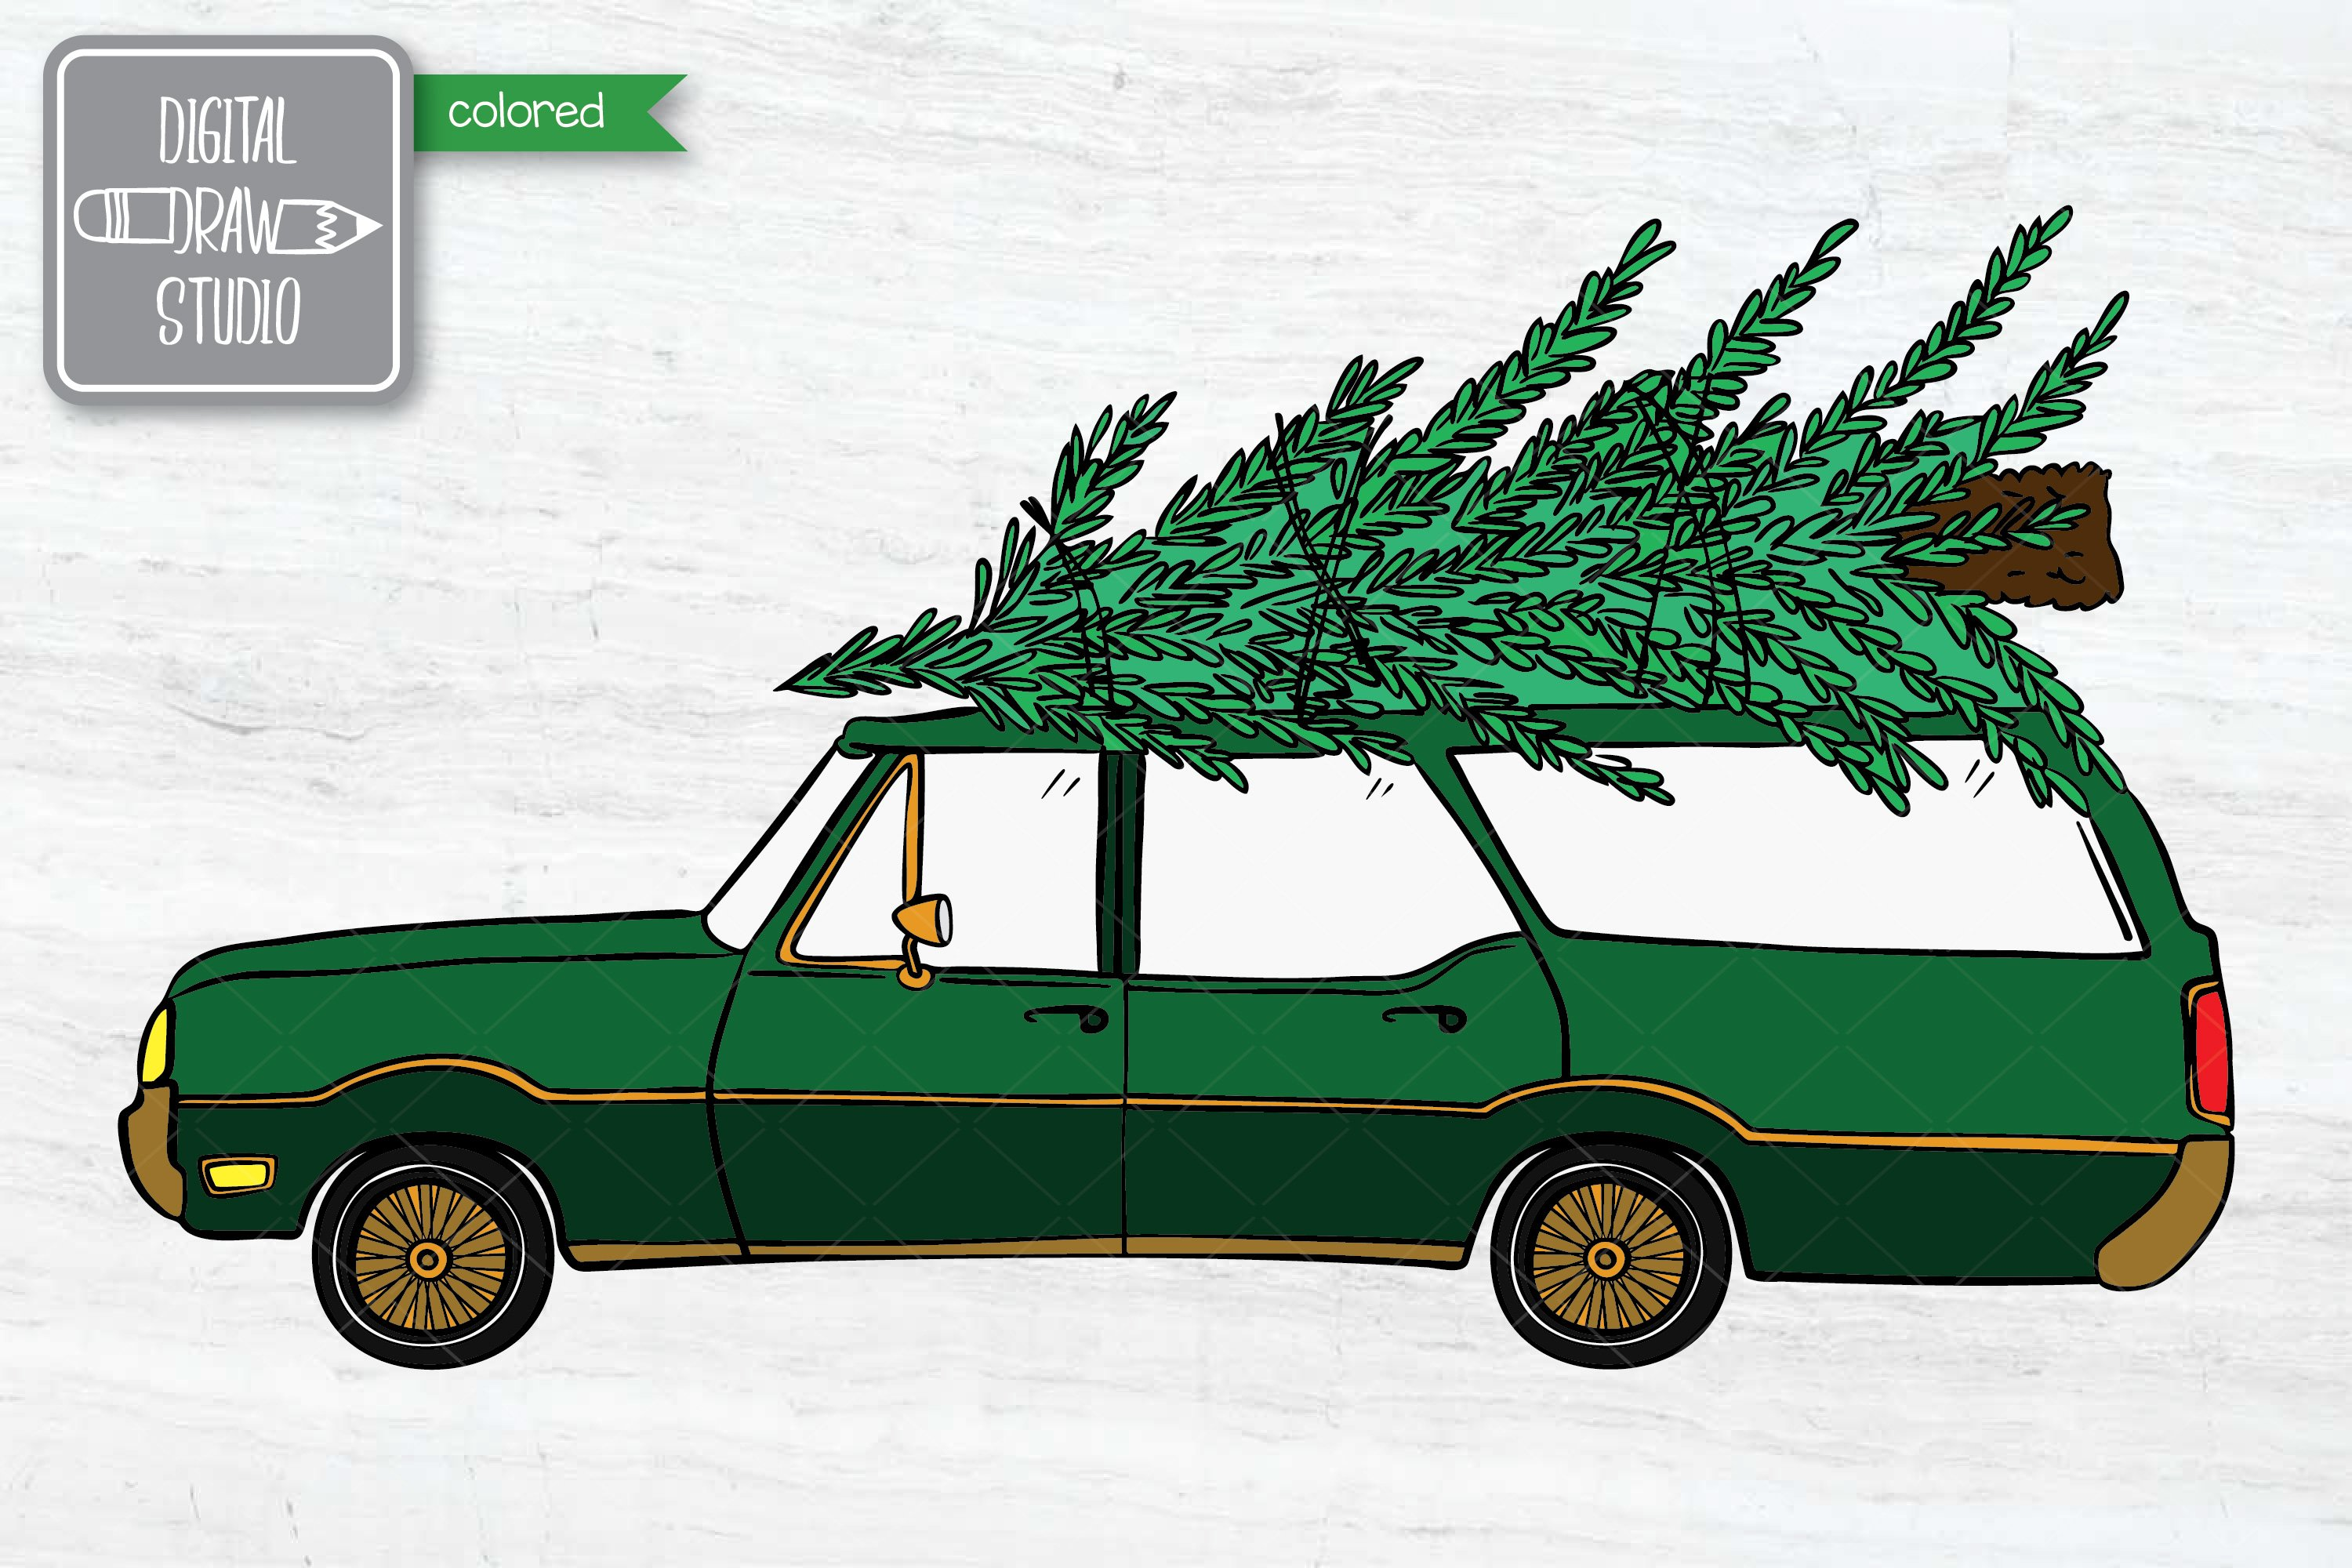 Color Station Wagon Car Christmas | Tree on Roof Top Holiday example image 4